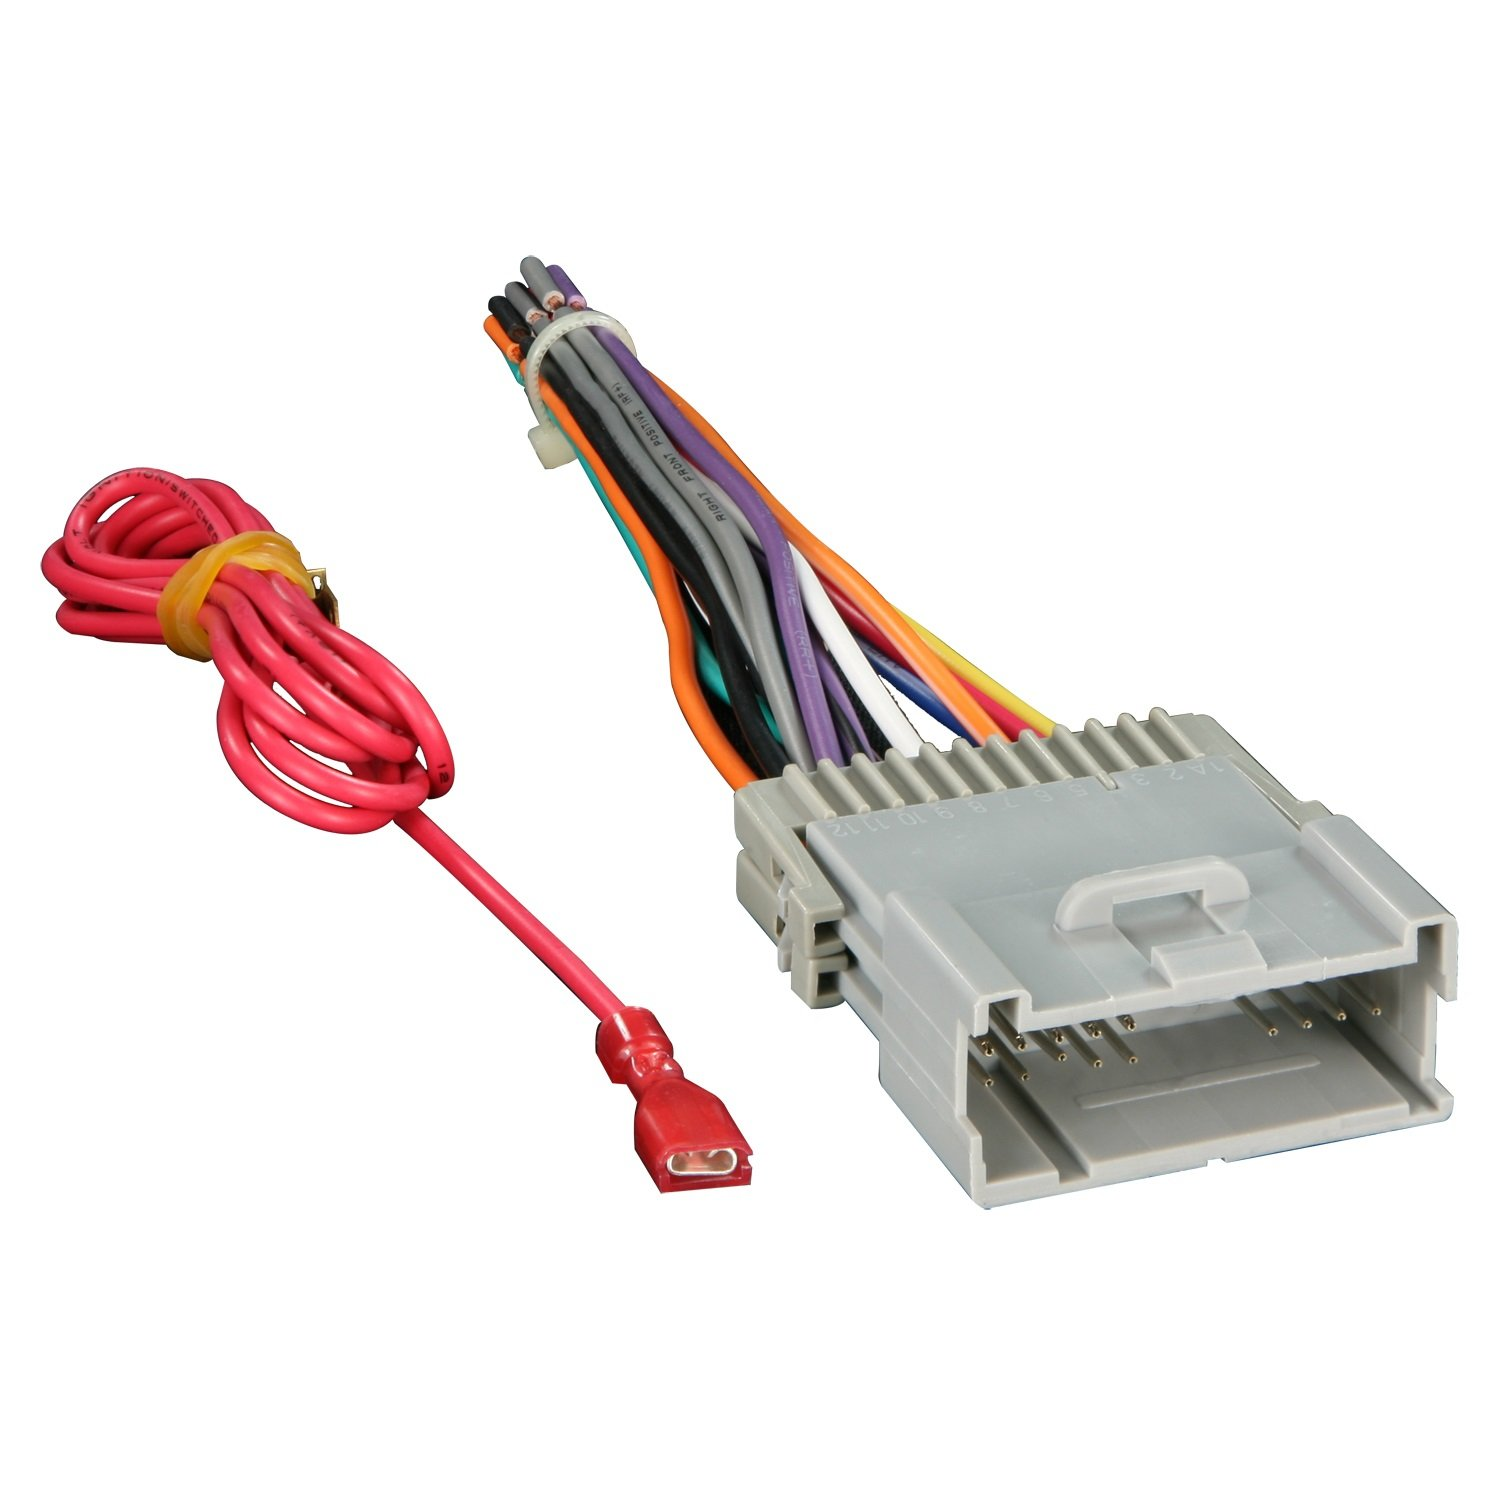 61eewxp9orL._SL1500_ amazon com metra 70 2003 radio wiring harness for gm 98 08 2001 F150 Radio Harness at reclaimingppi.co